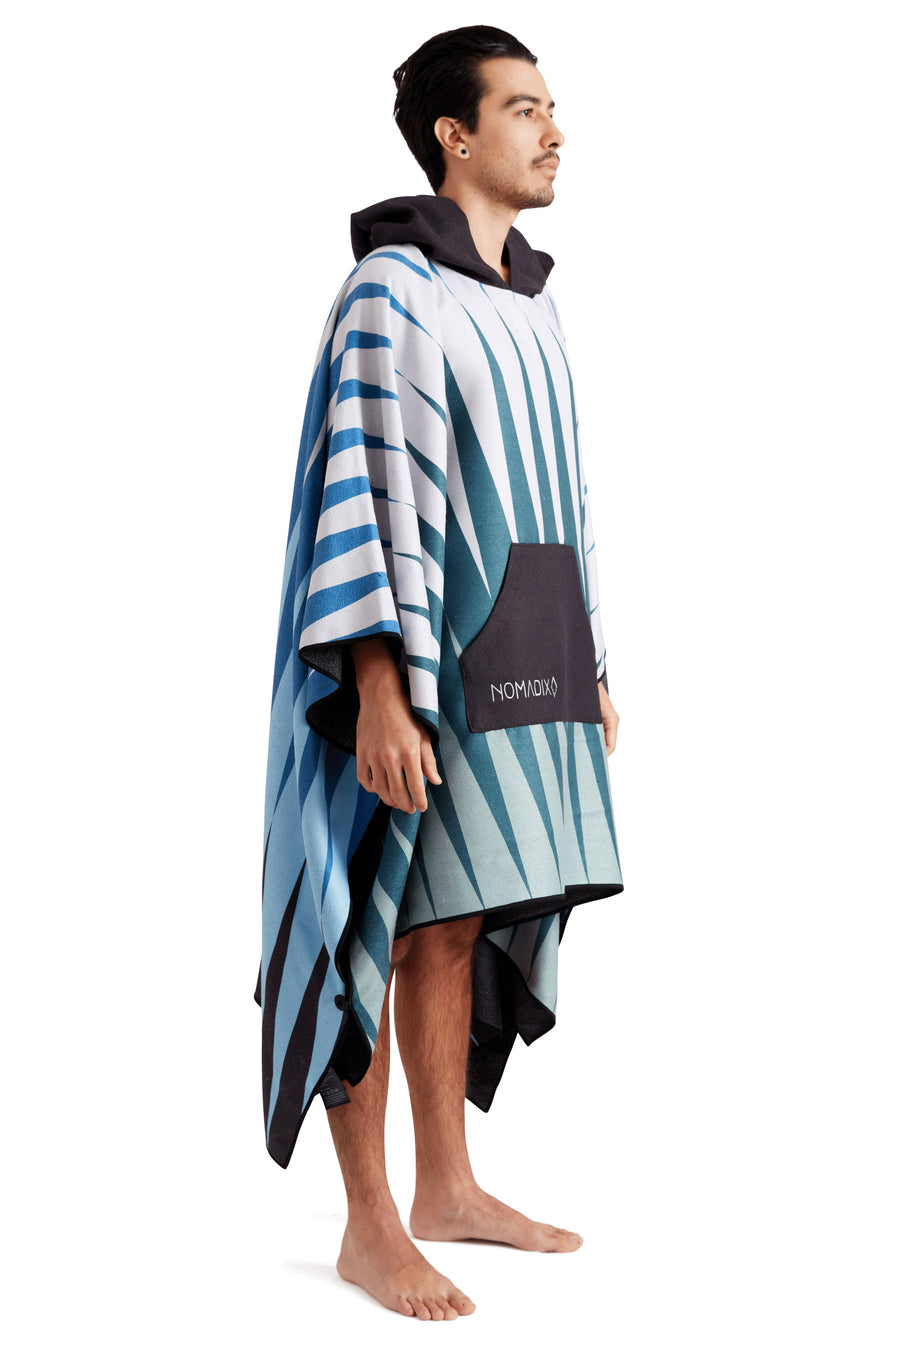 Heat Wave Green Blue Poncho Towel